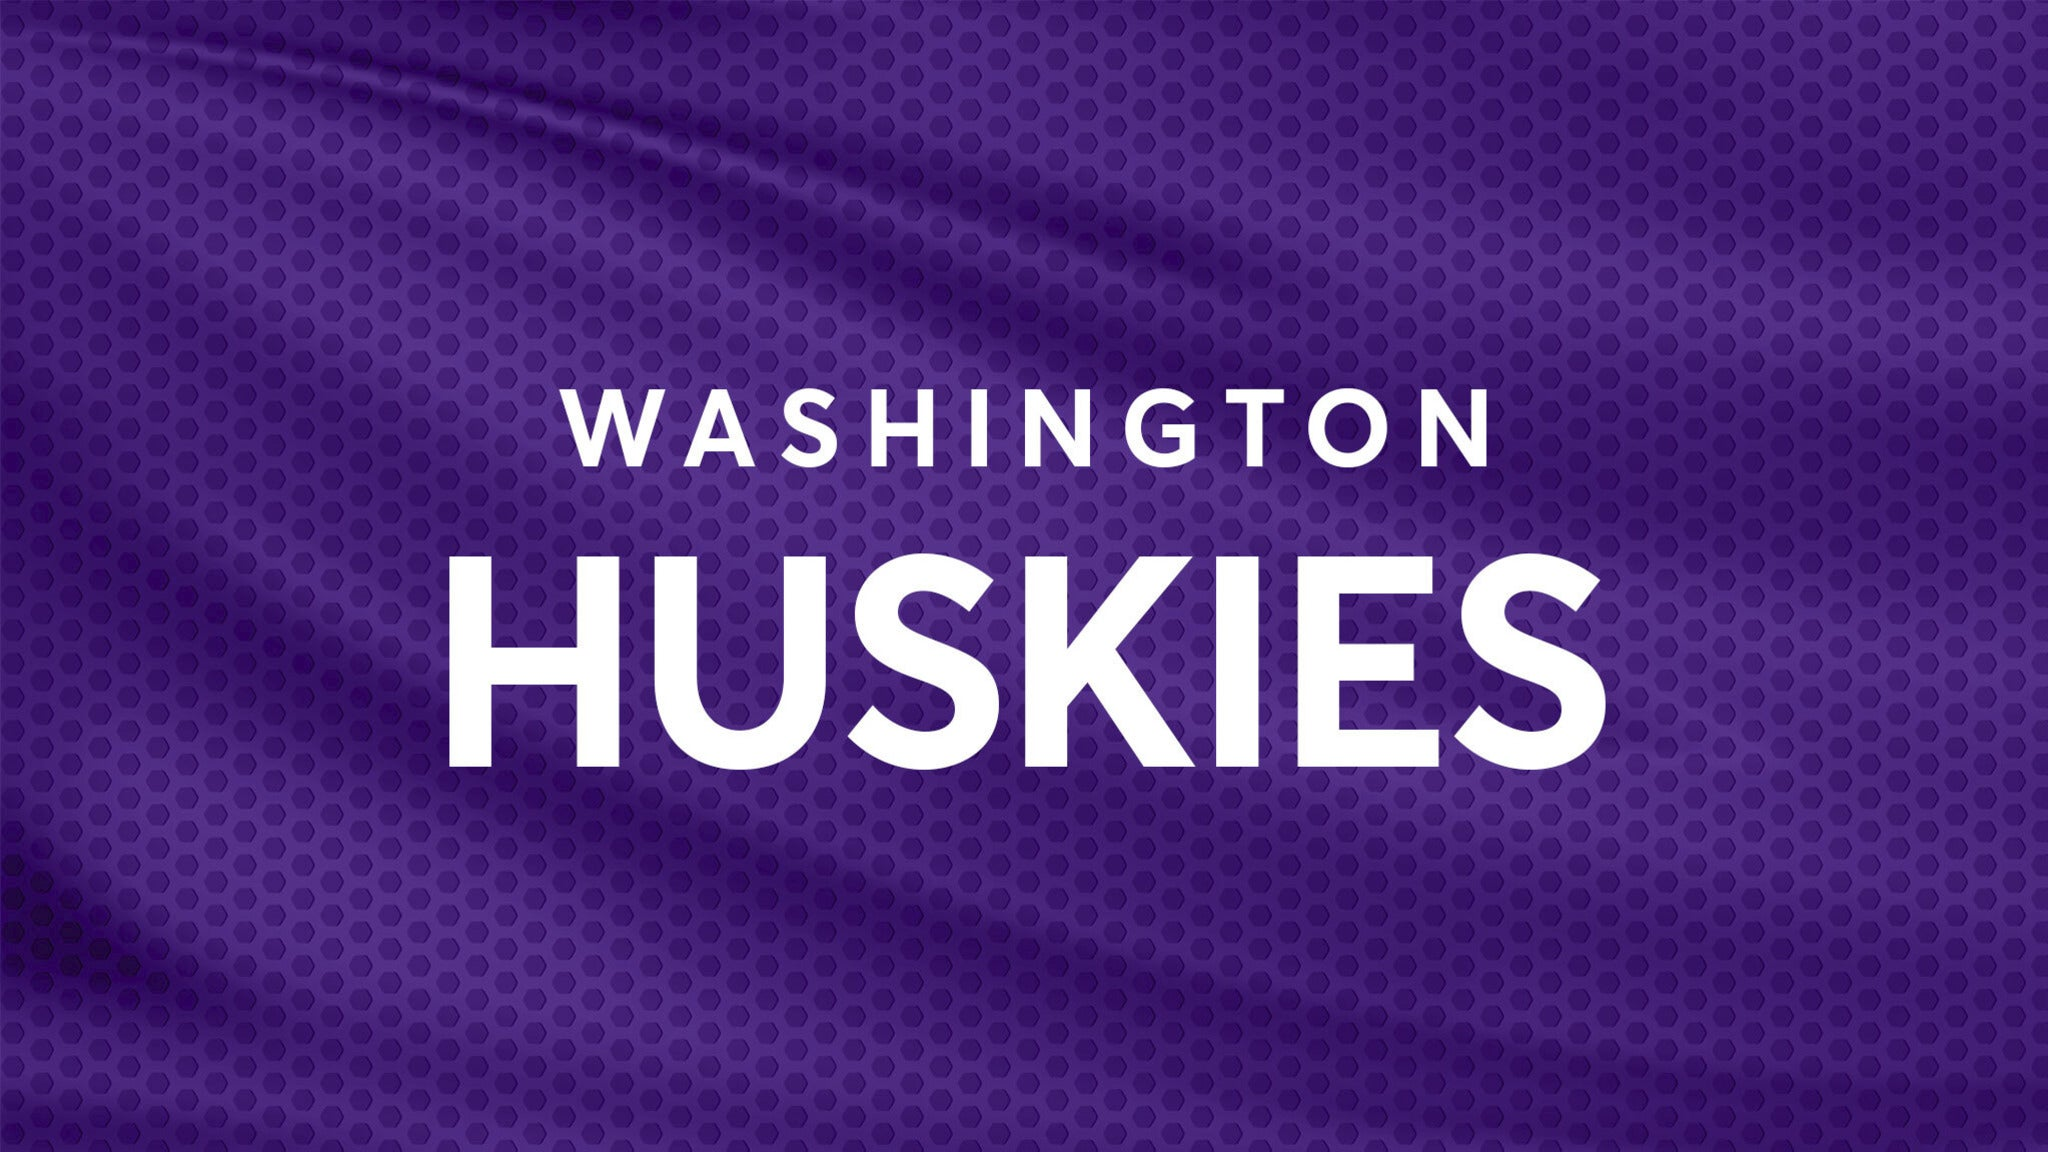 Washington Huskies Mens Basketball vs. Oregon Ducks Mens Basketball